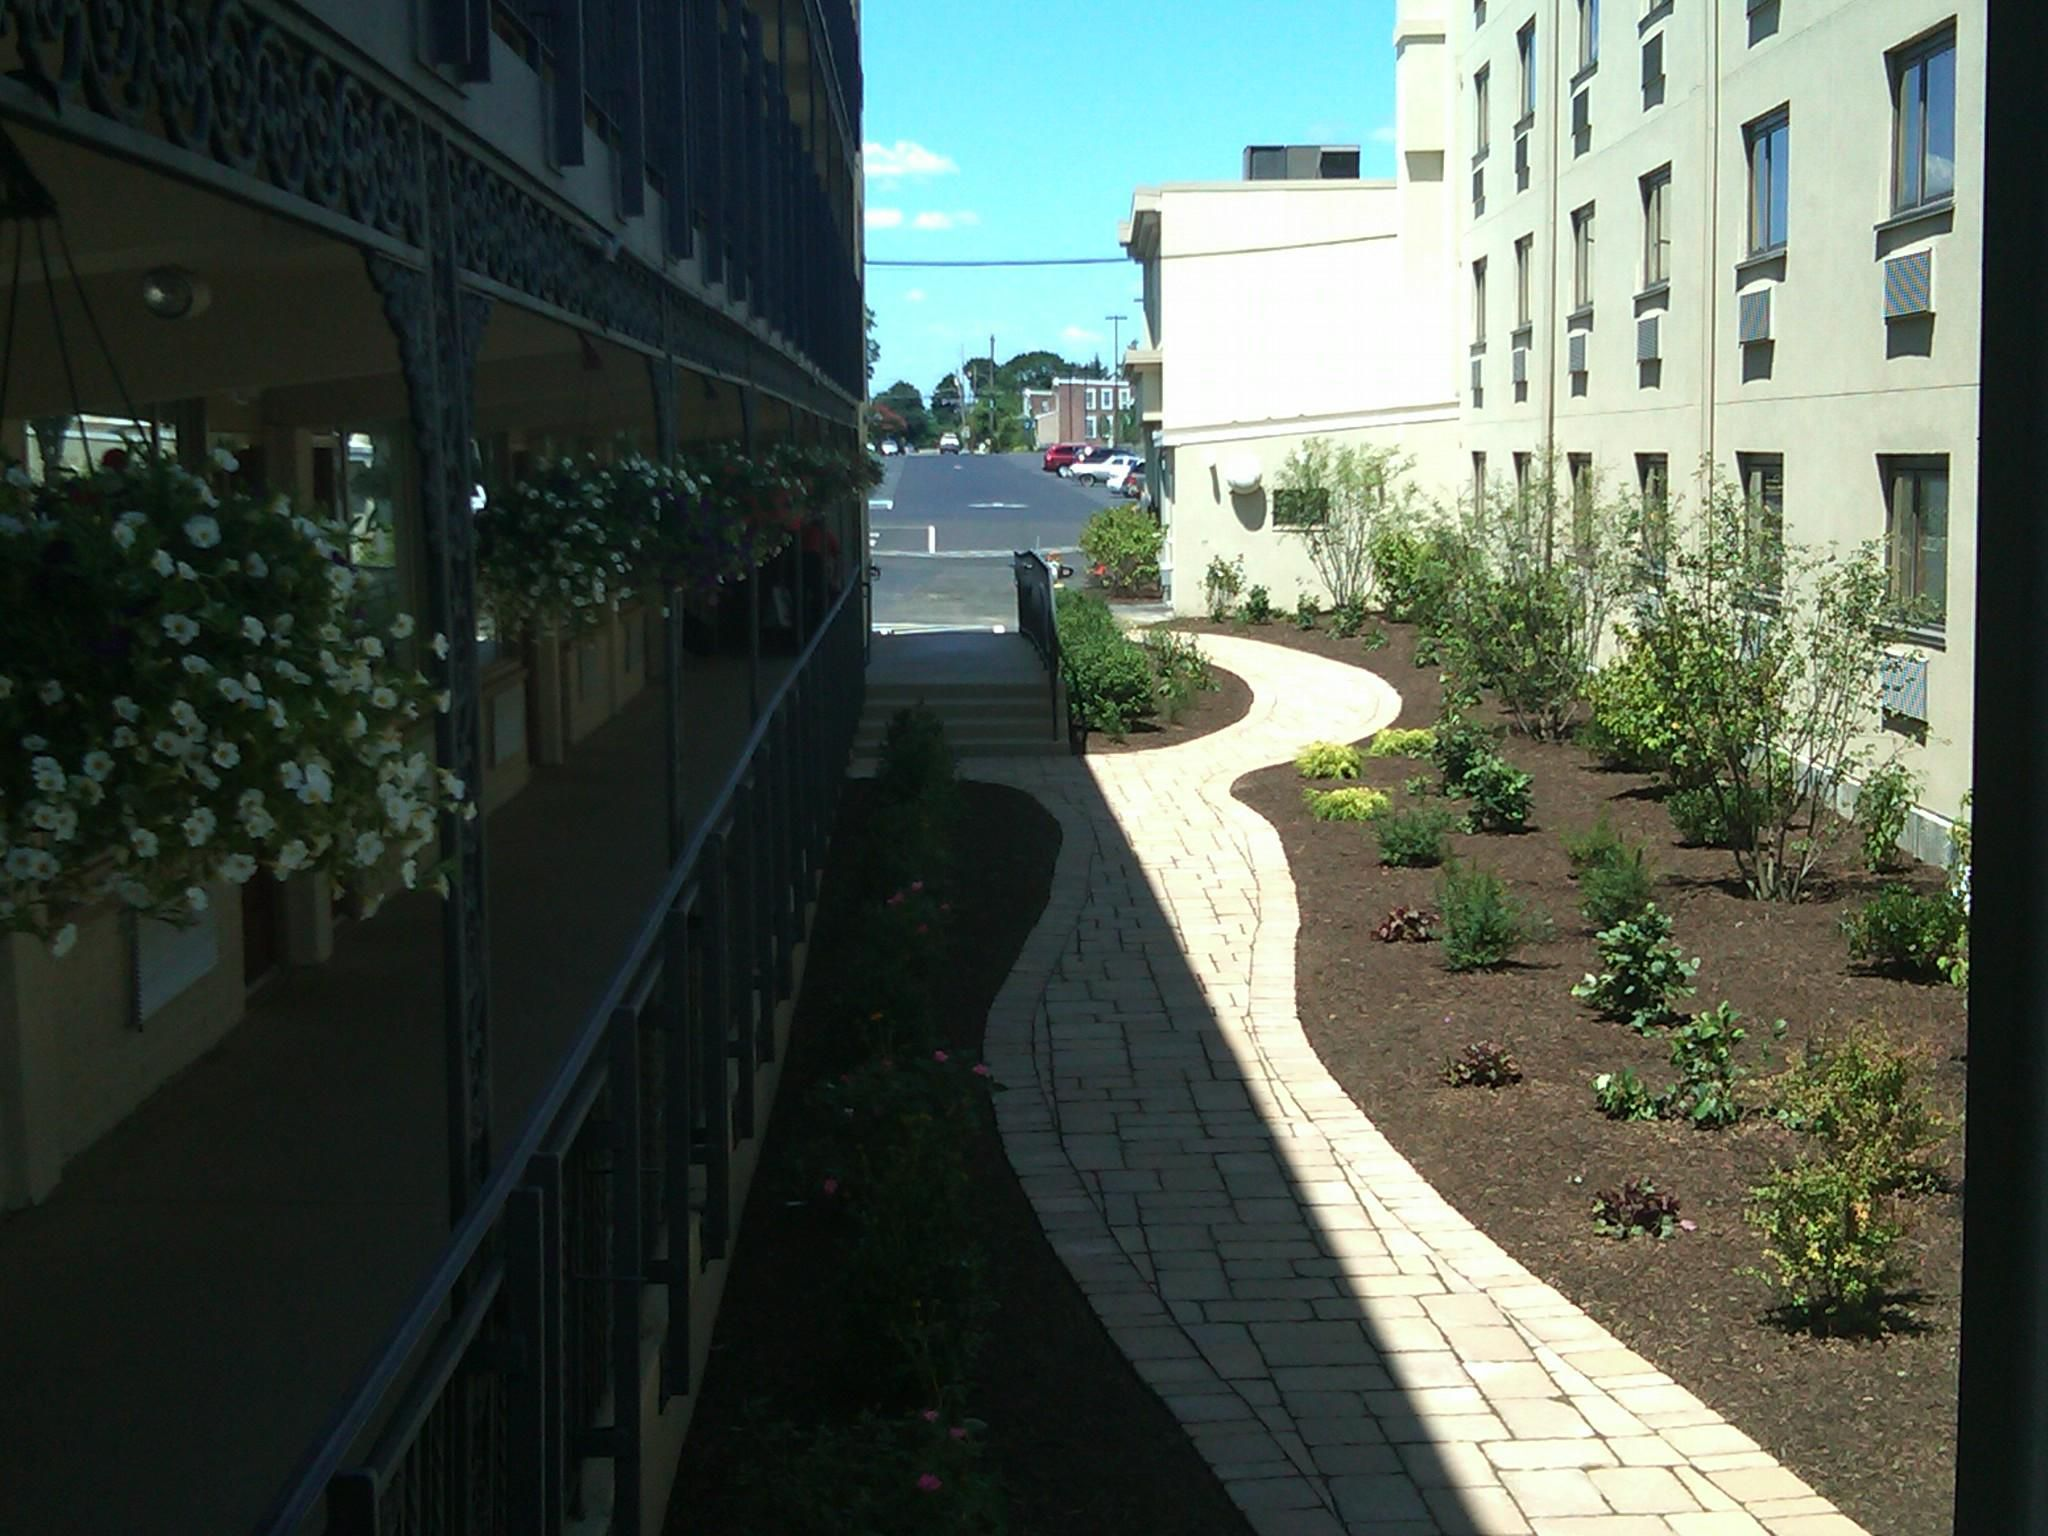 Holiday Inn Express Philadelphia Airport Courtyard